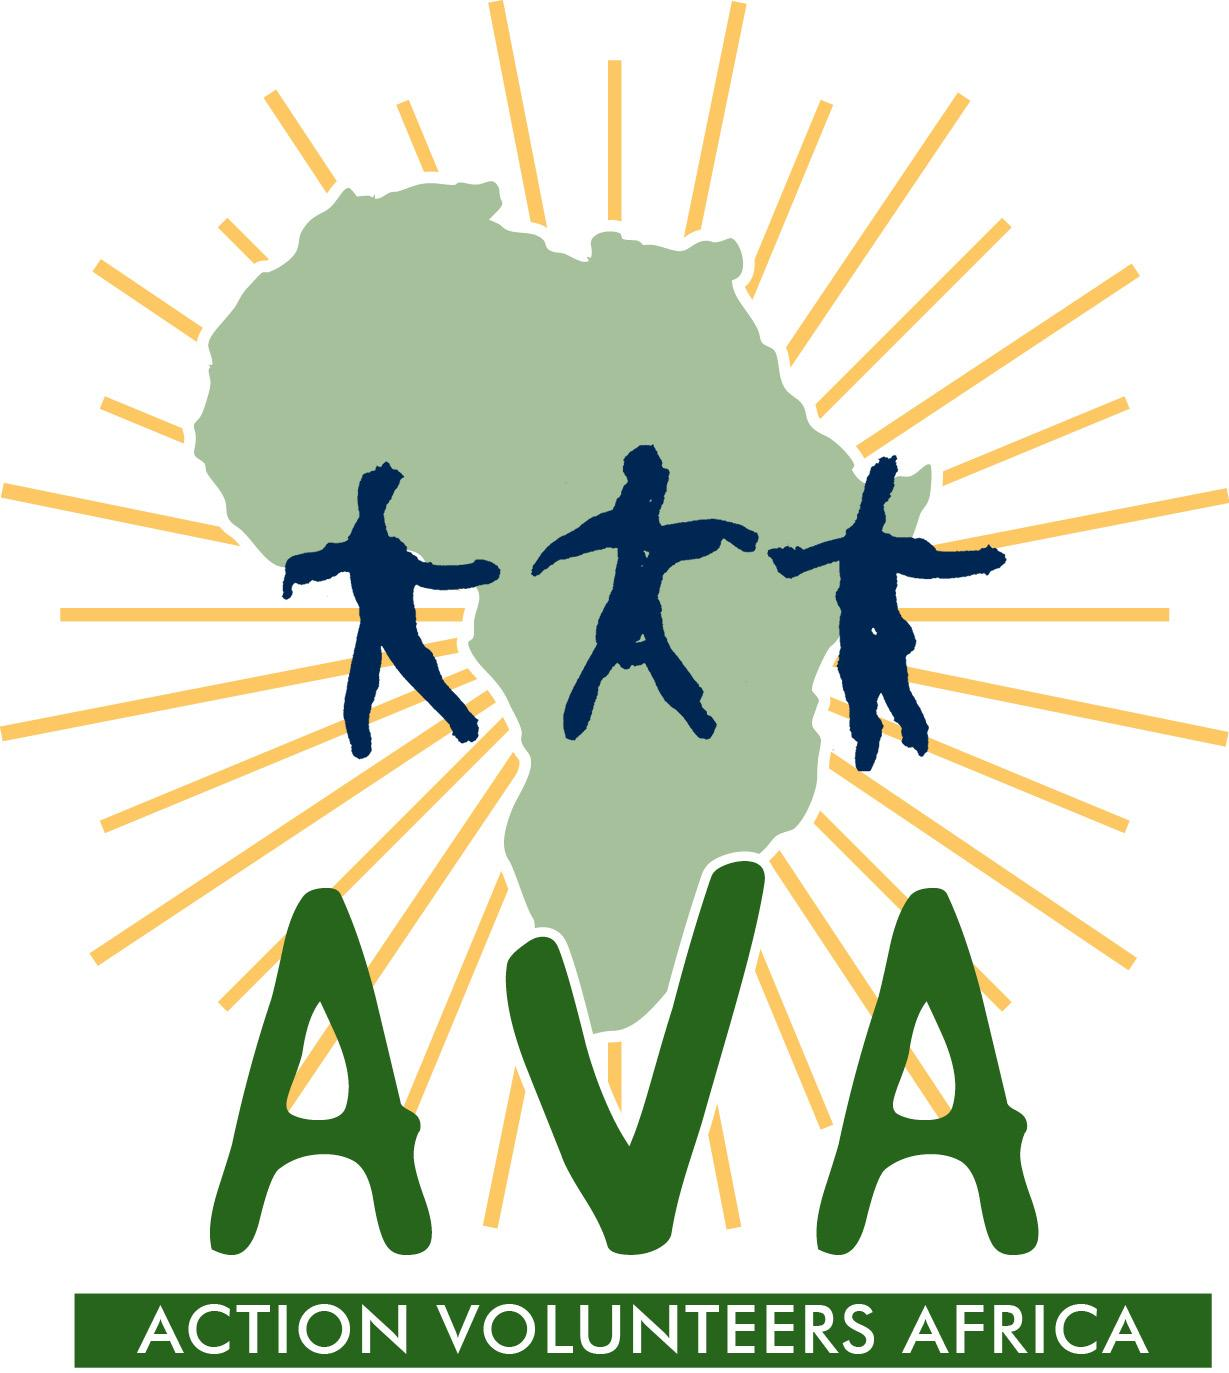 Action Volunteers Africa Thumb Image